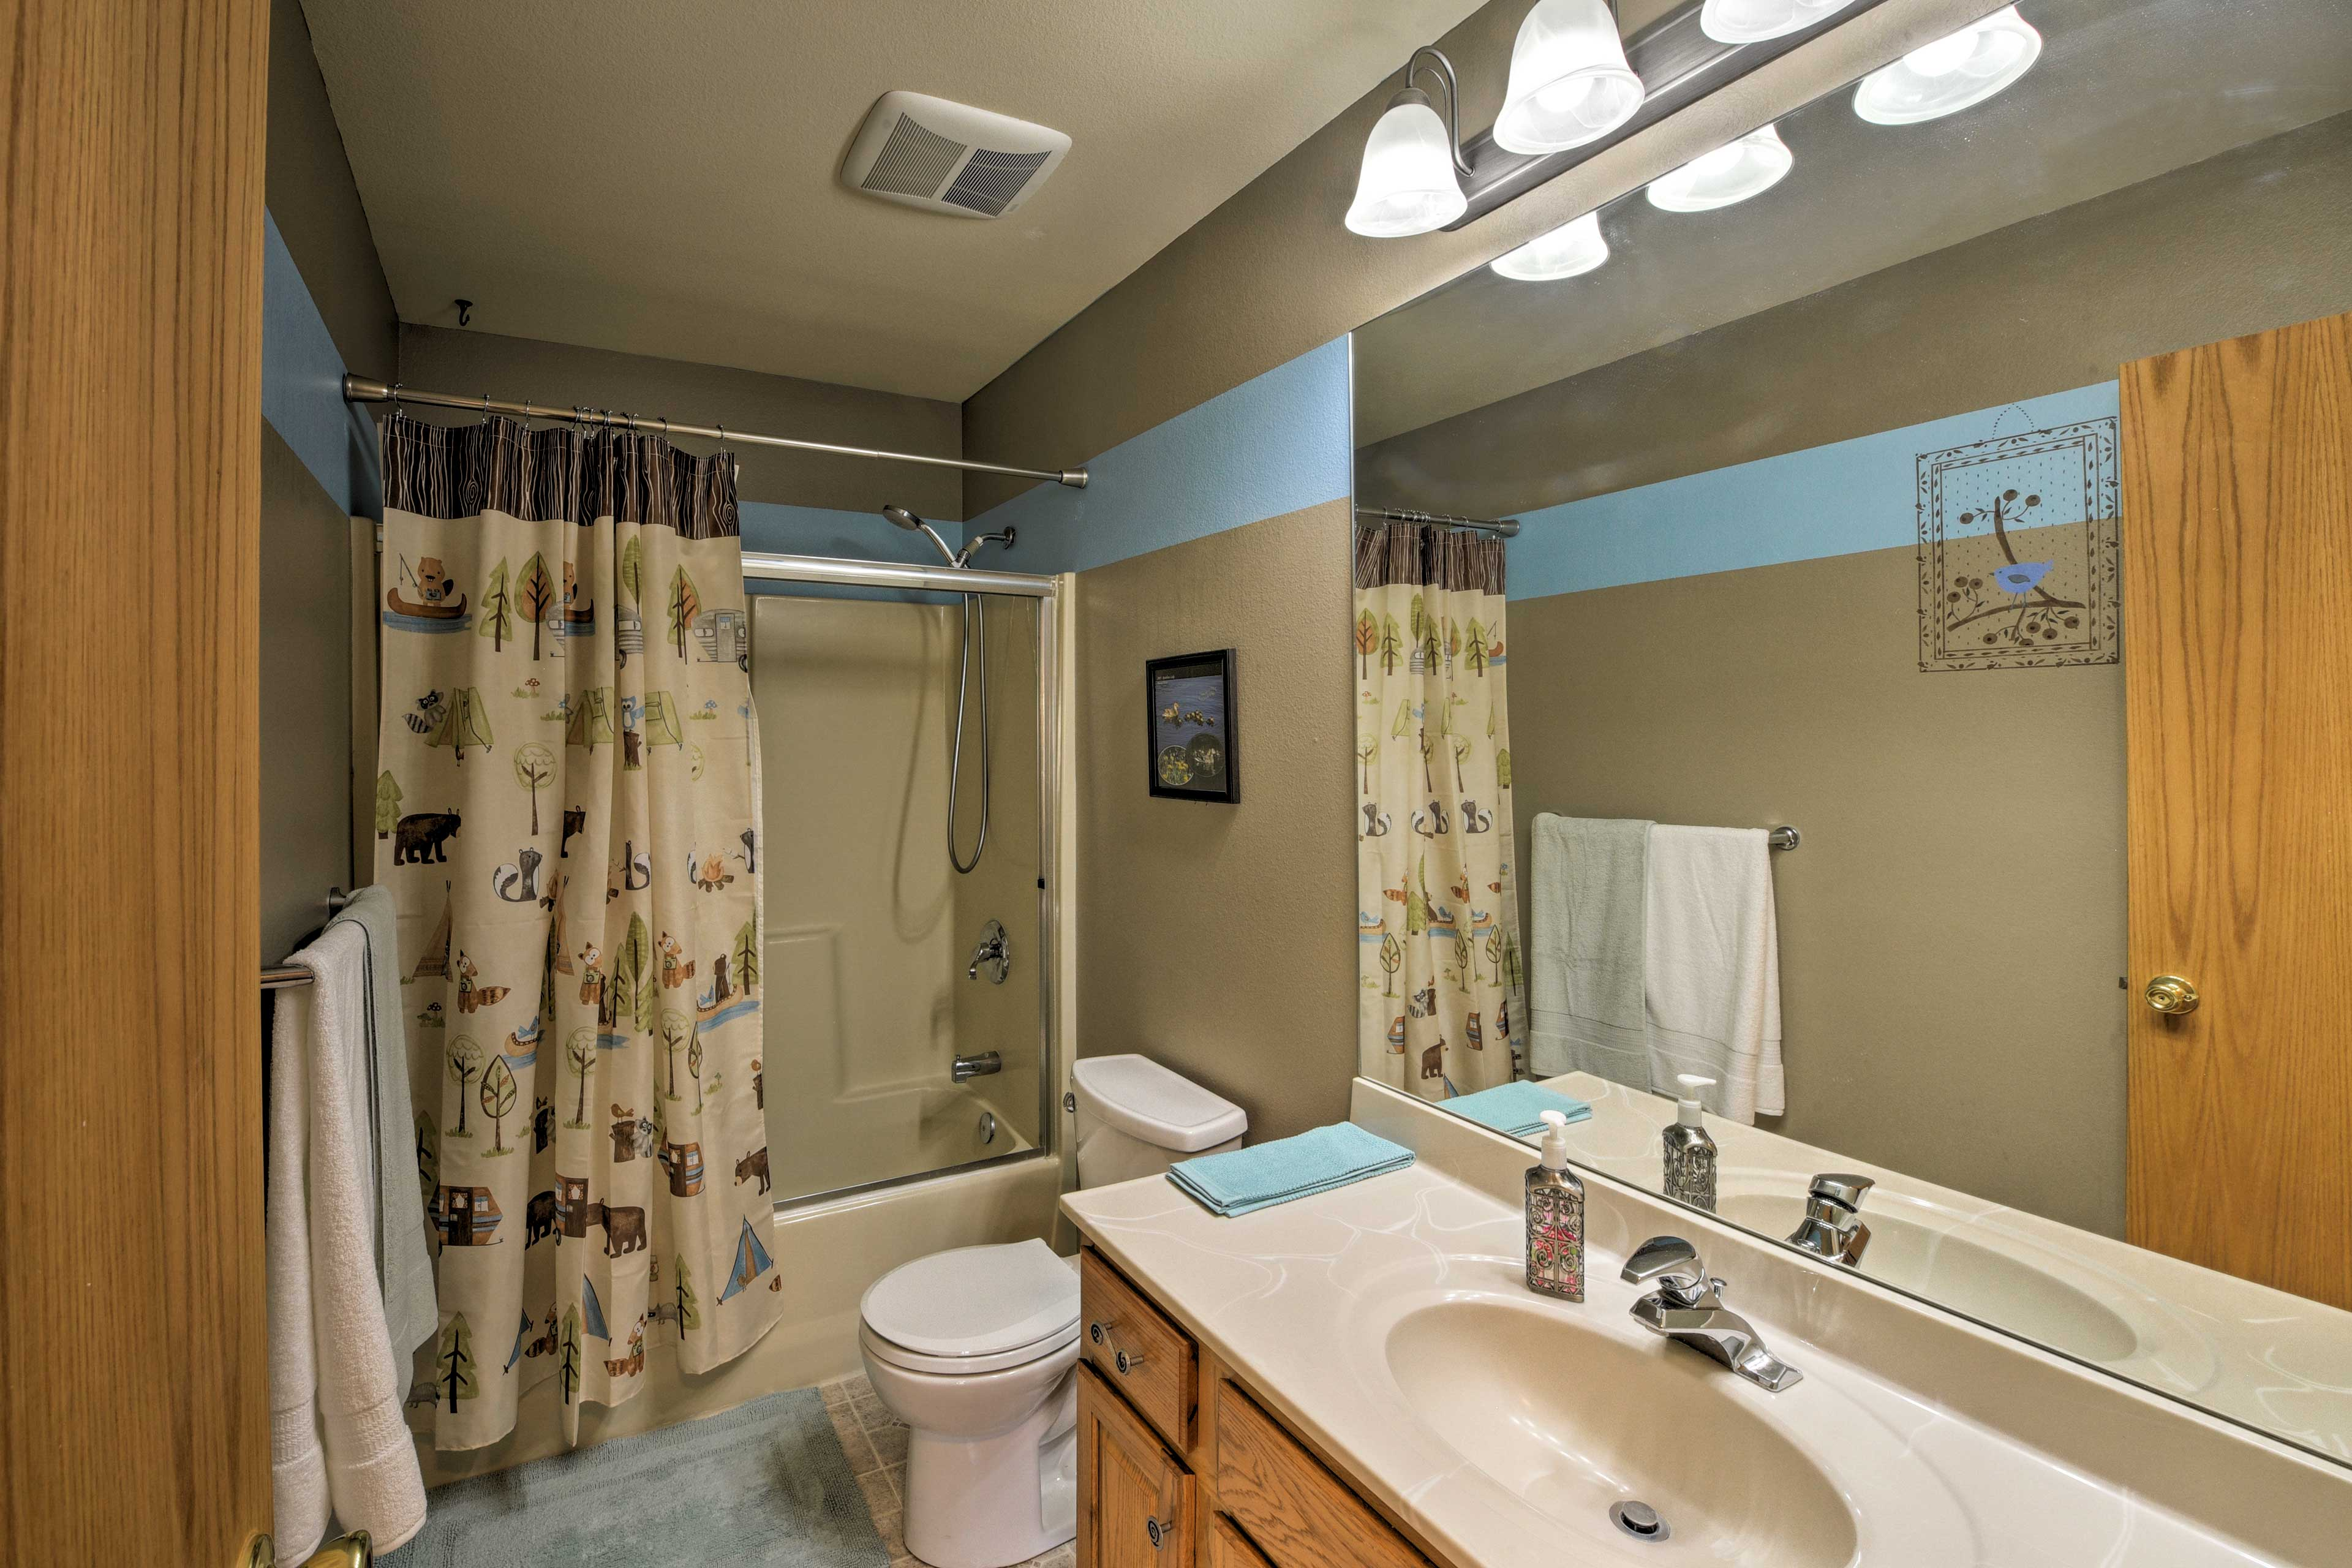 This second full bathroom features a tub/shower combo.